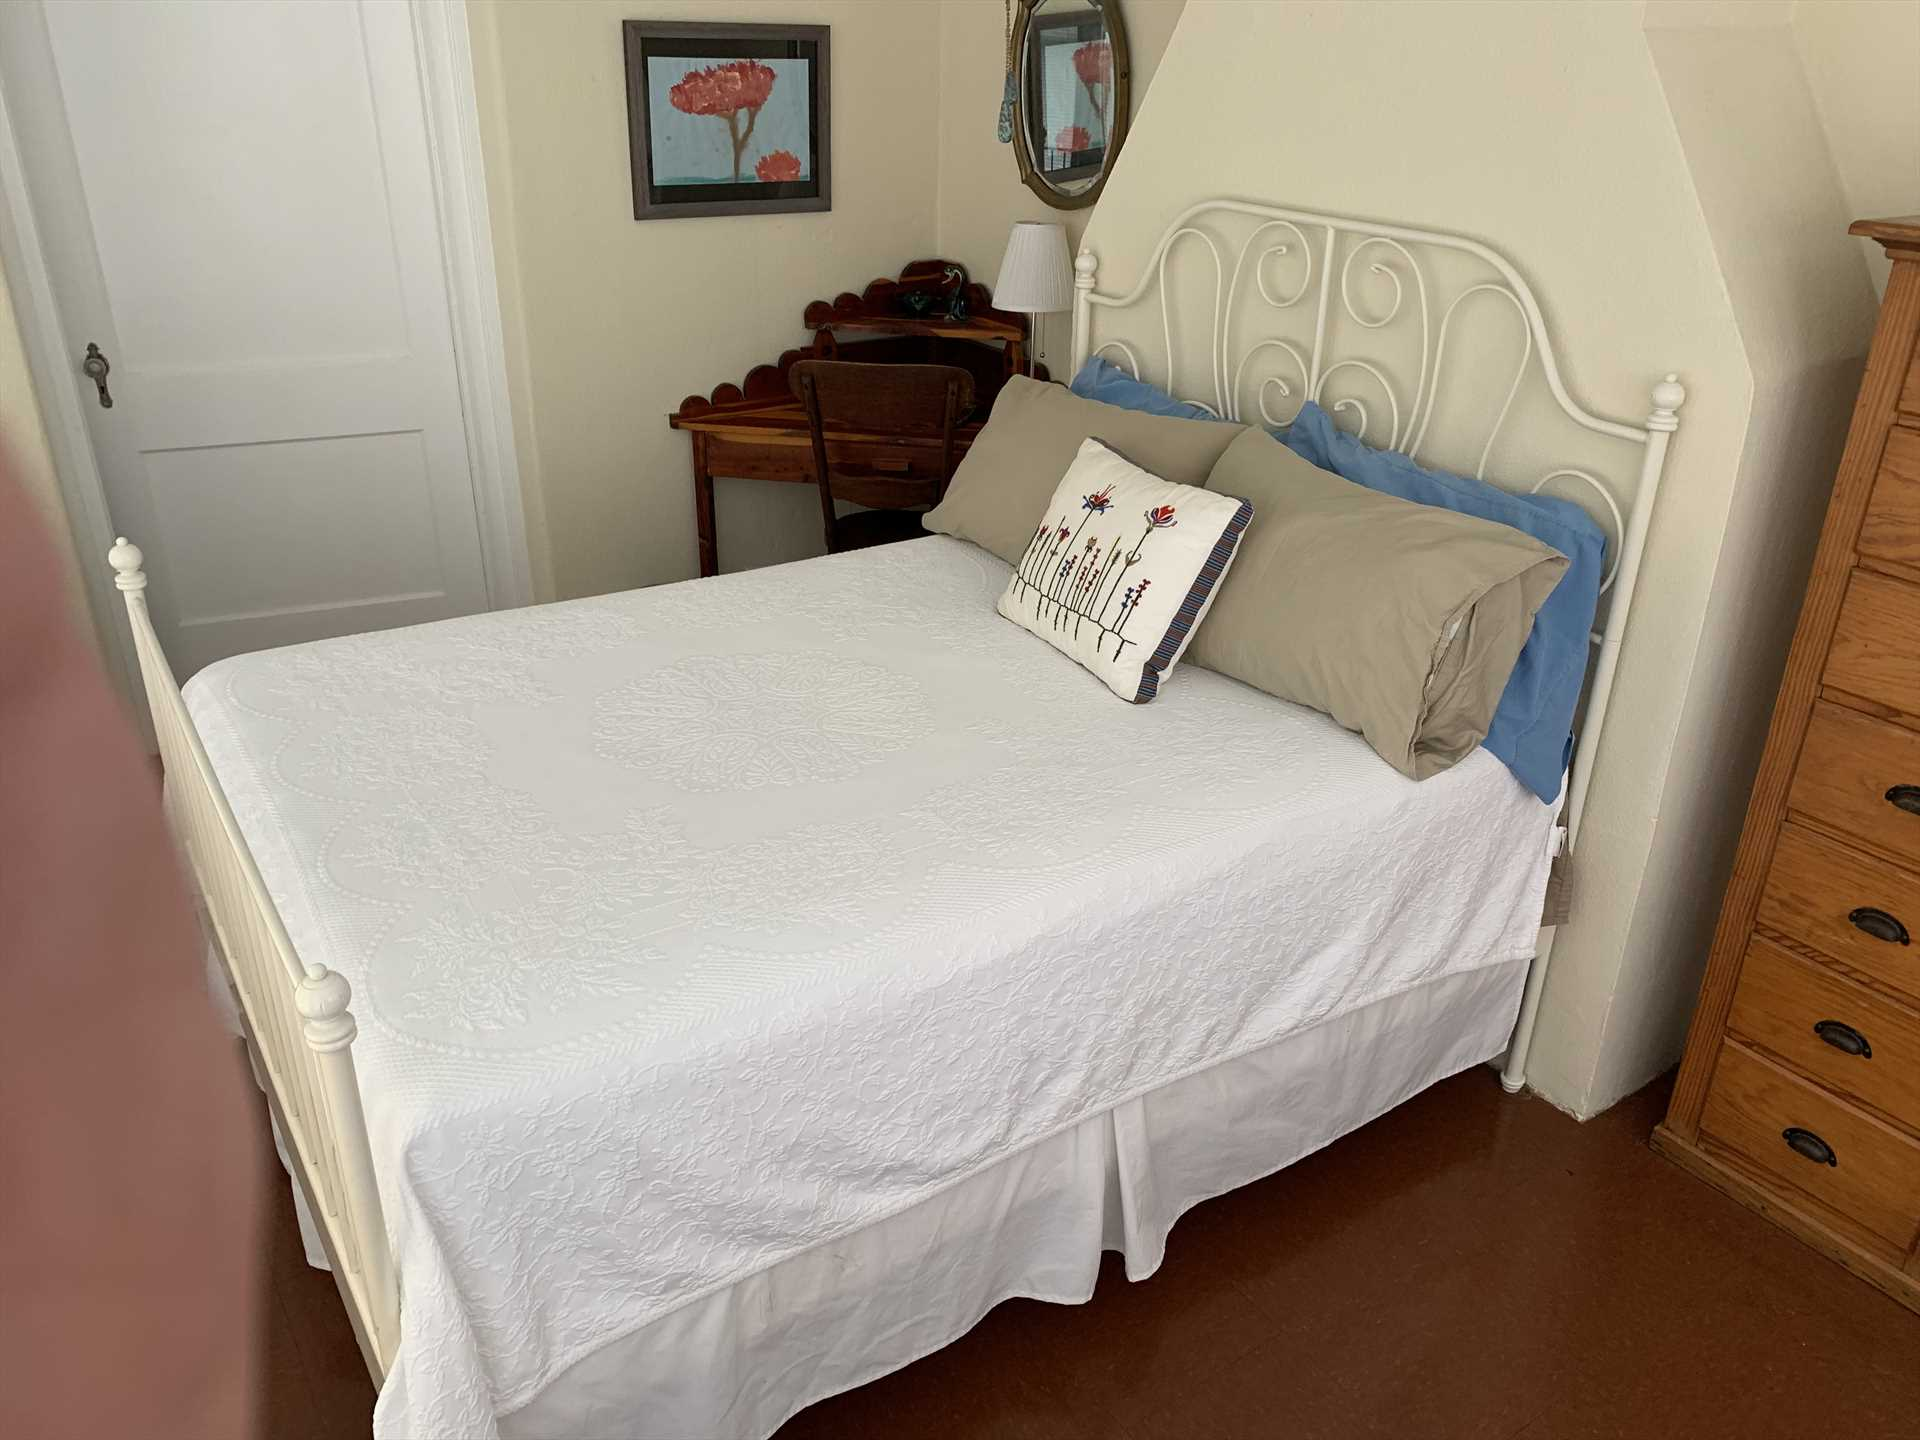 Bring 'em all along! We've got sleeping accommodations for up to 14 guests here at the retreat.